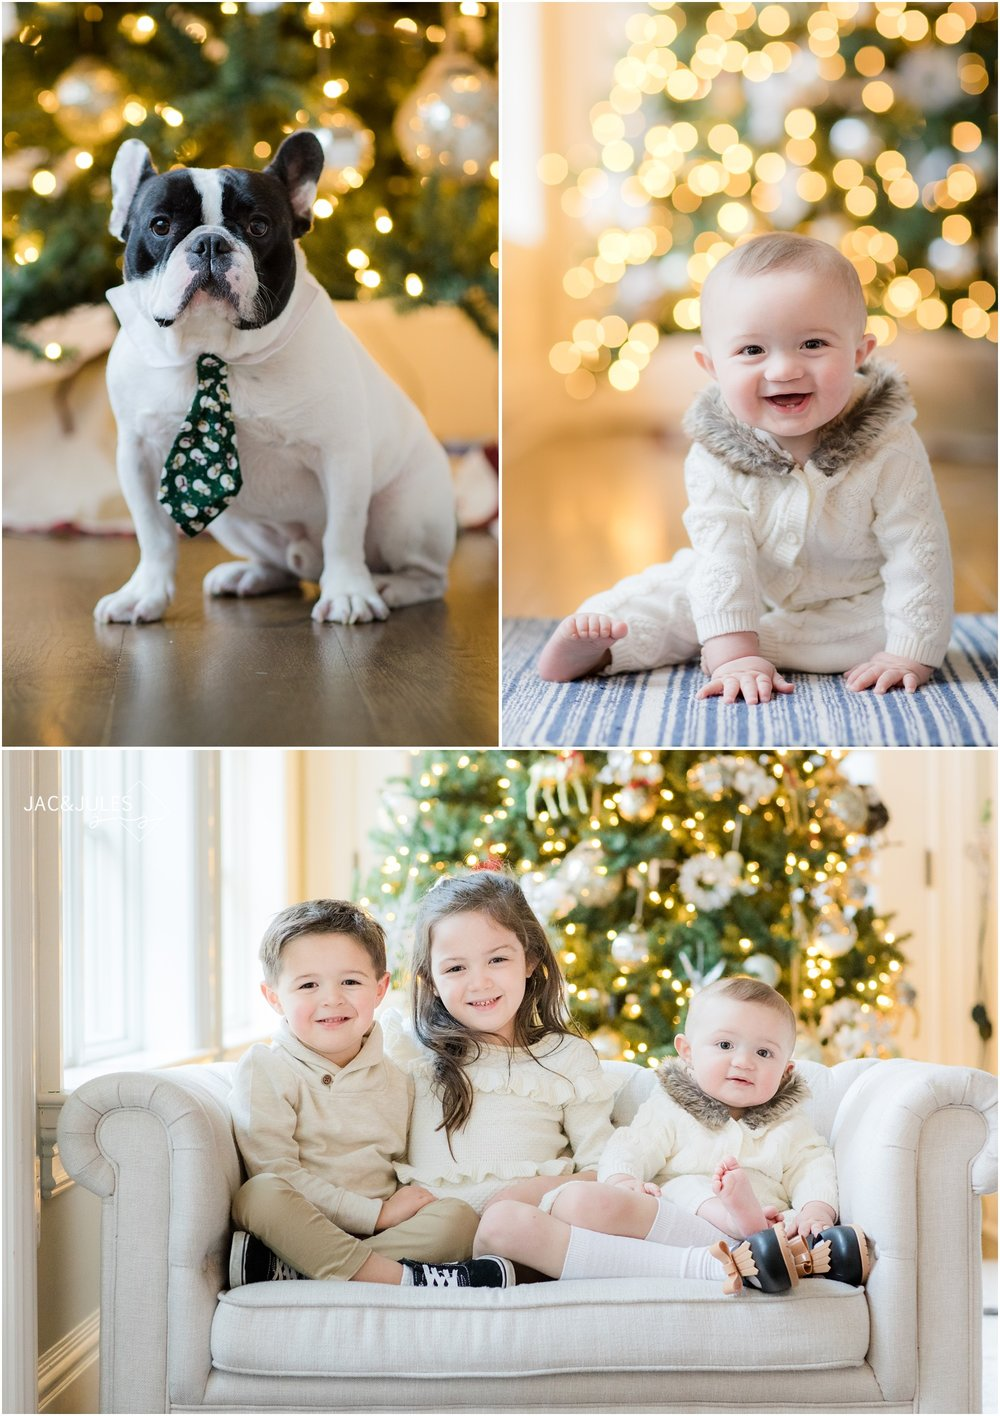 Photo of kids and dog with Christmas tree at home in Toms River, NJ.